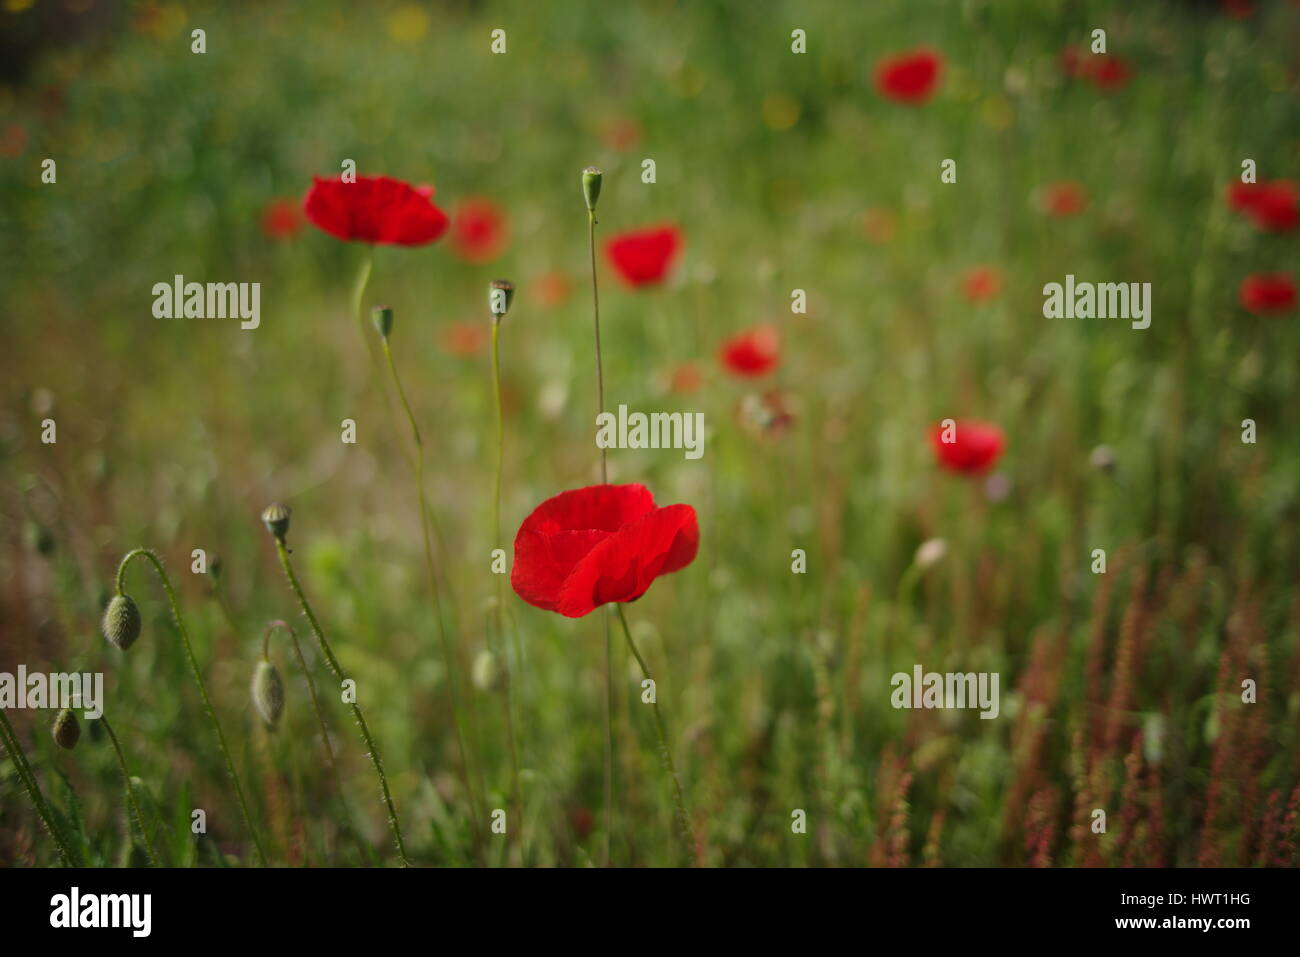 Heroin opium poppy stock photos heroin opium poppy stock images 2017 new photo picture of poppy and poppies in field to show red and green mightylinksfo Image collections